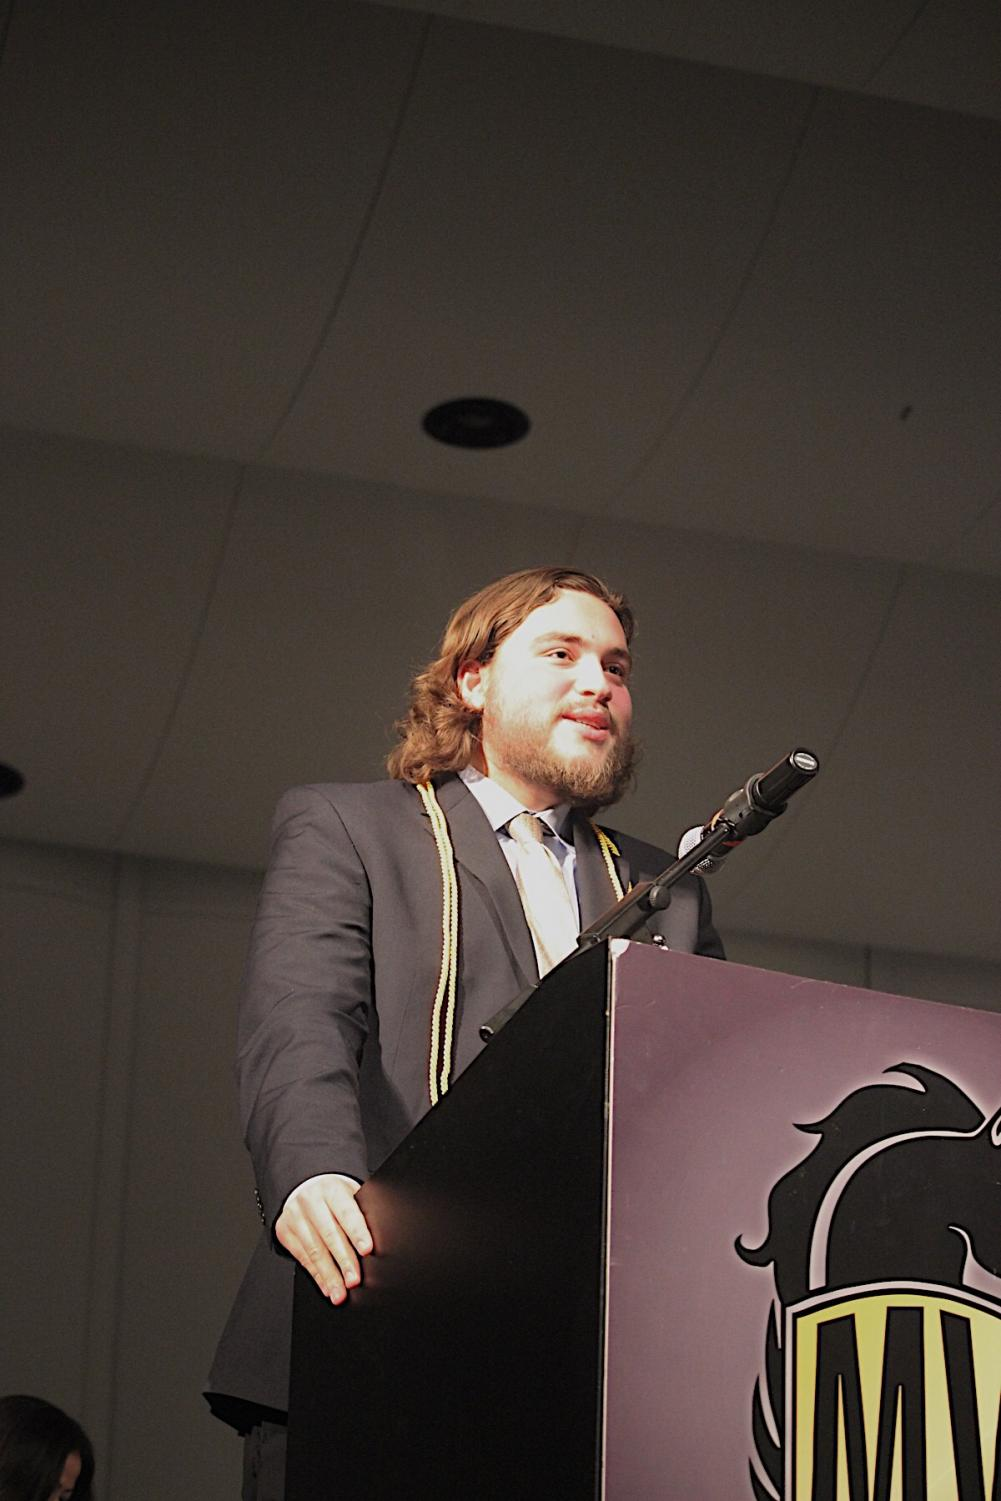 Adam+Smith+delivers+a+speech+and+acknowledges+the+achievements+of+his+colleagues.